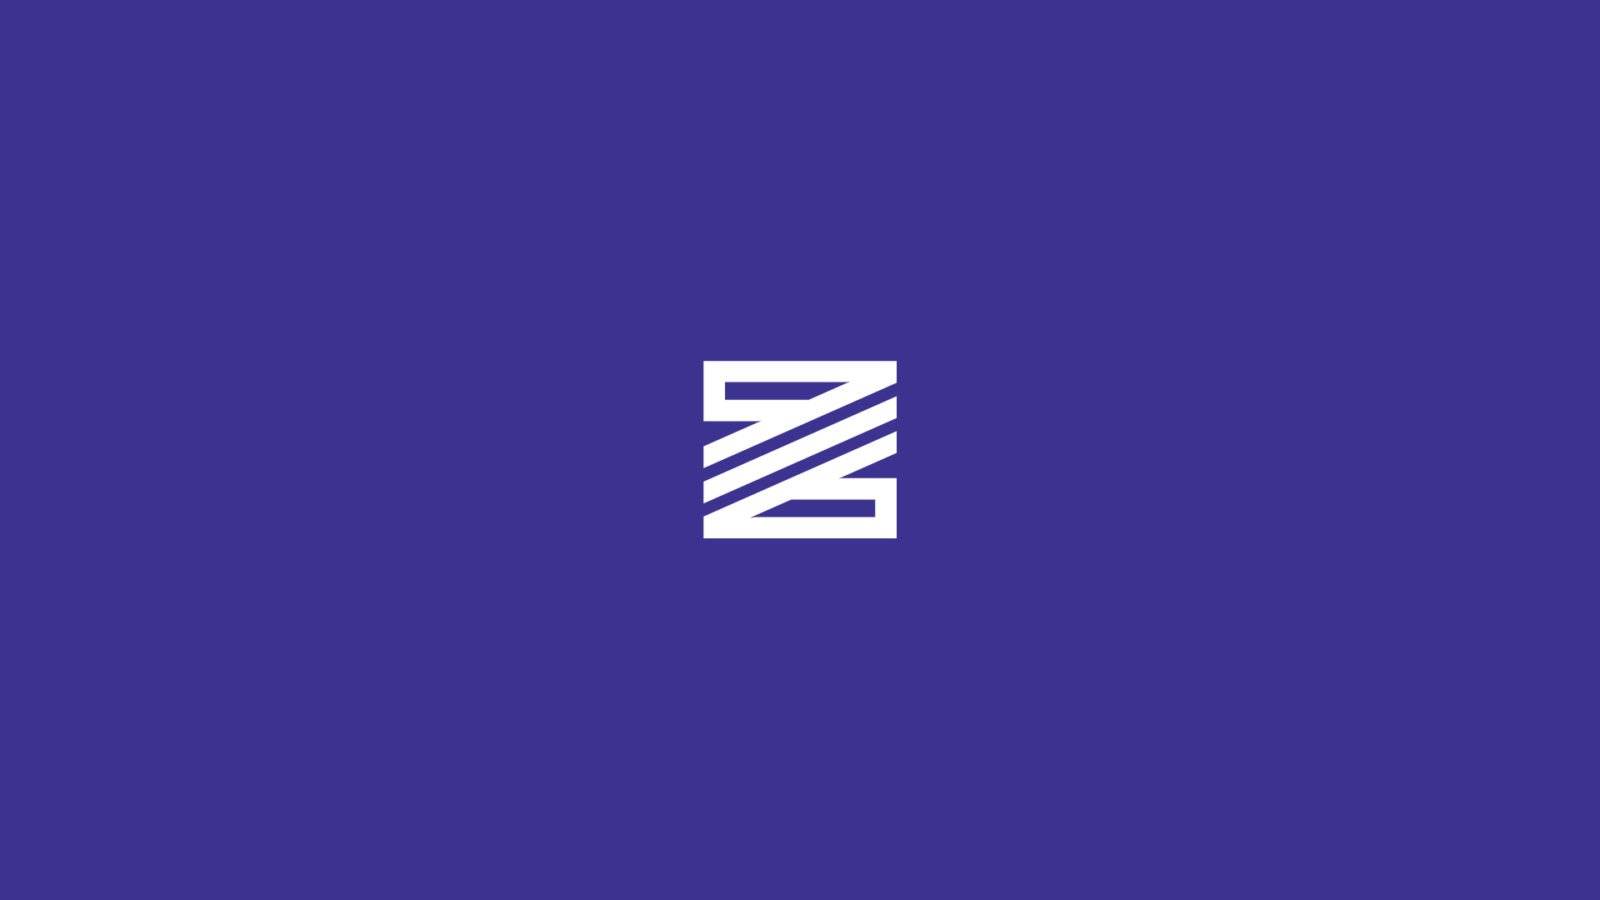 A Brand Identity for Zipie by Bullhorn Creative